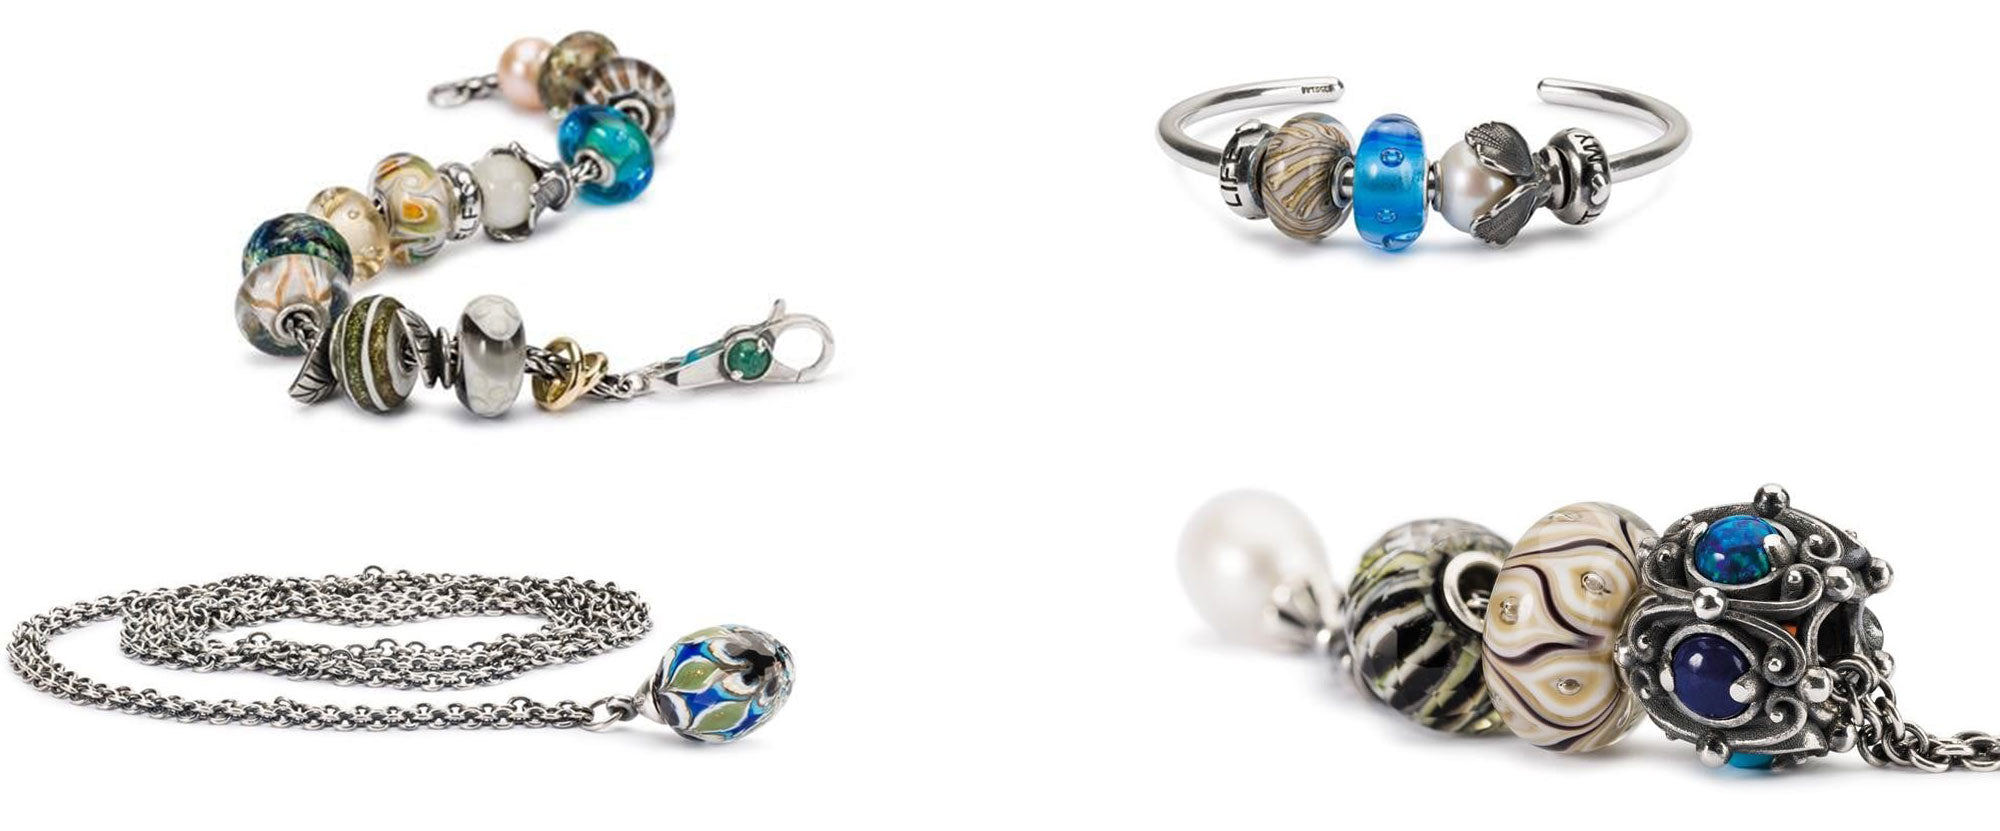 Trollbeads New Wisdom Spring Collection |Frühling 2021